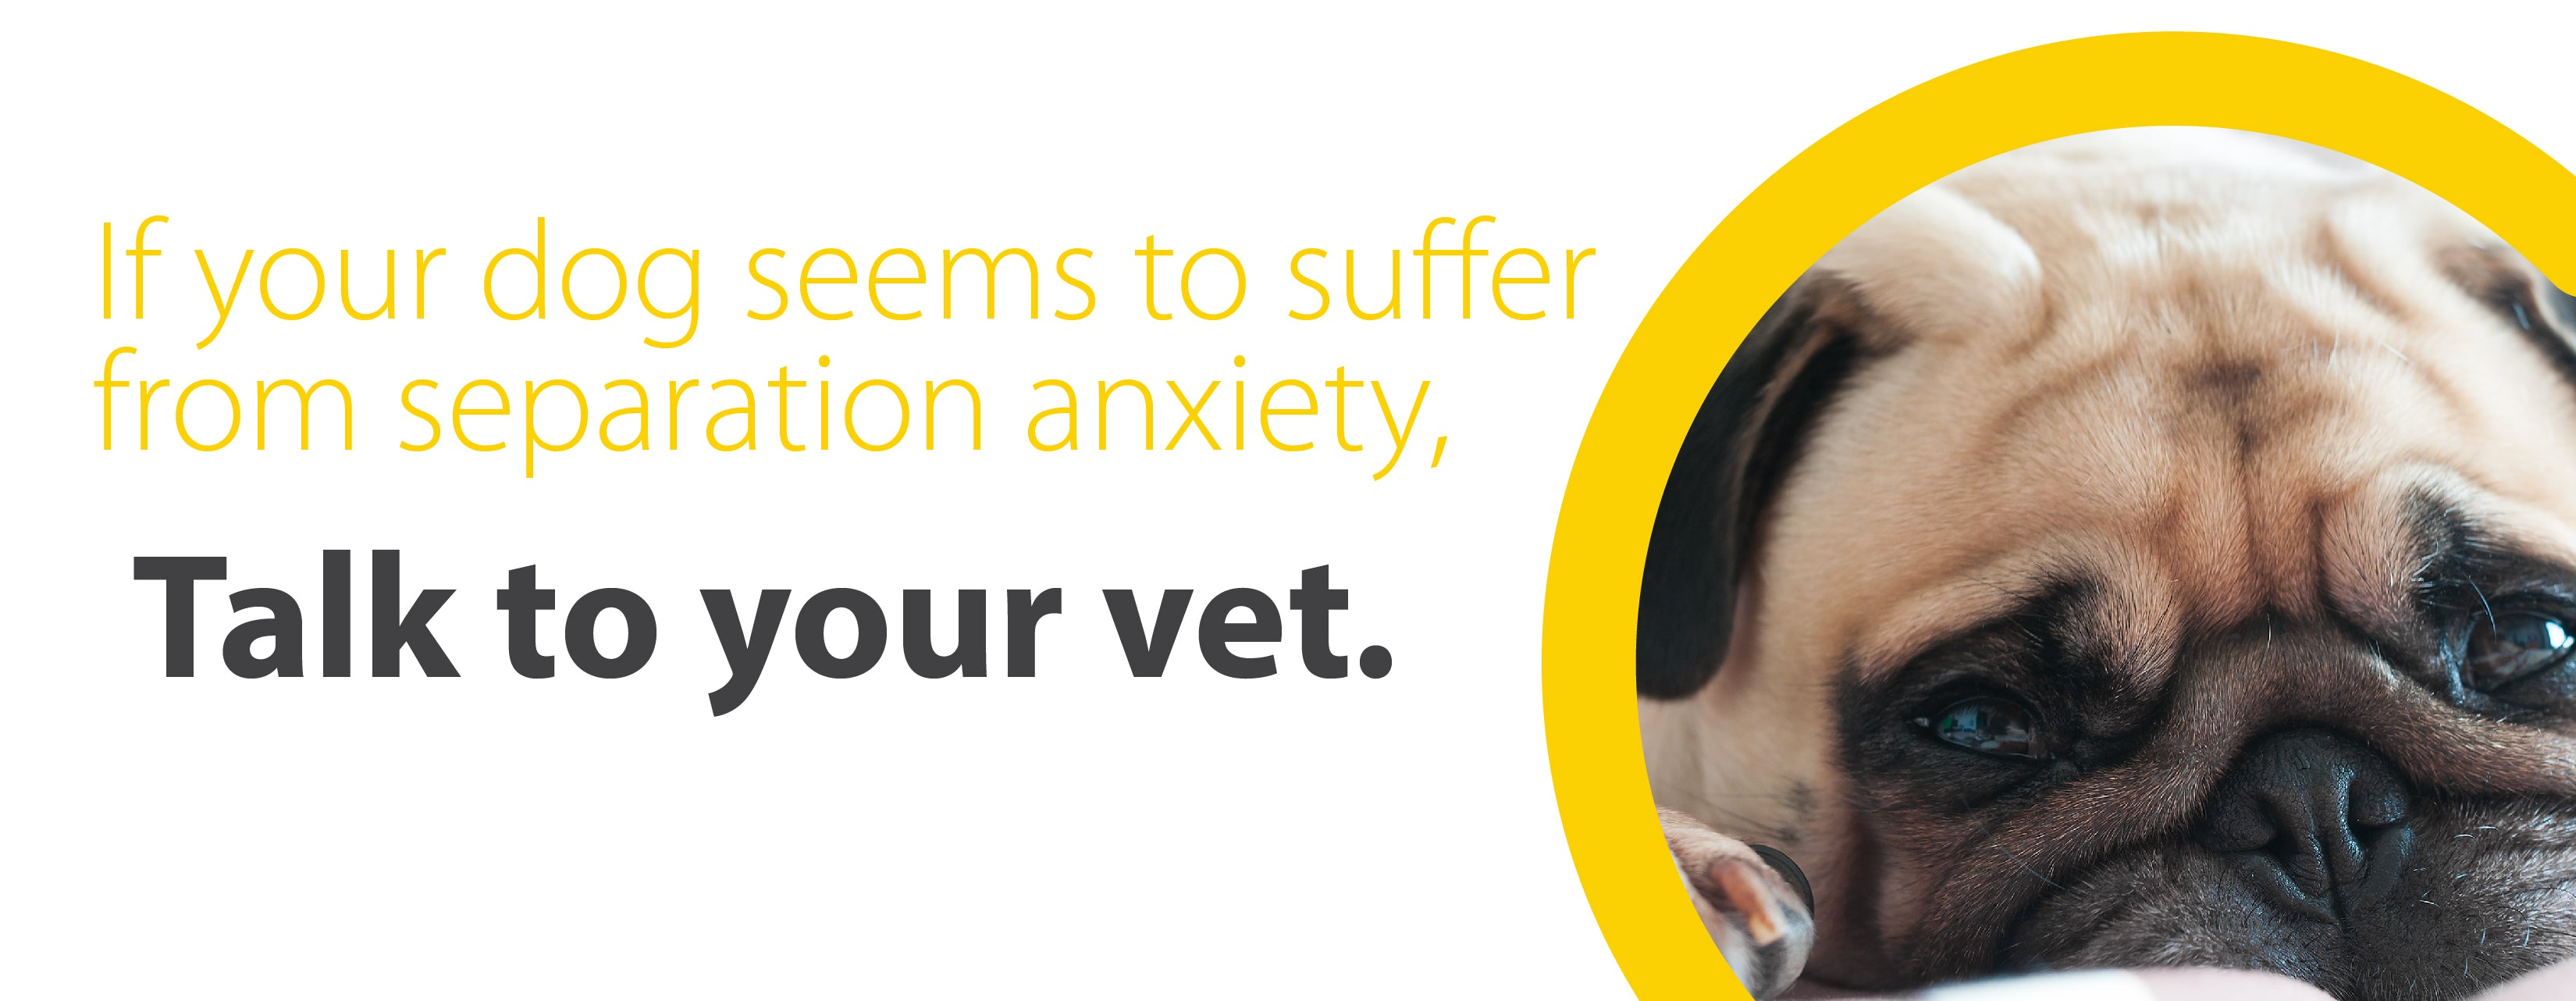 if your dog suffers from separation anxiety talk to your vet